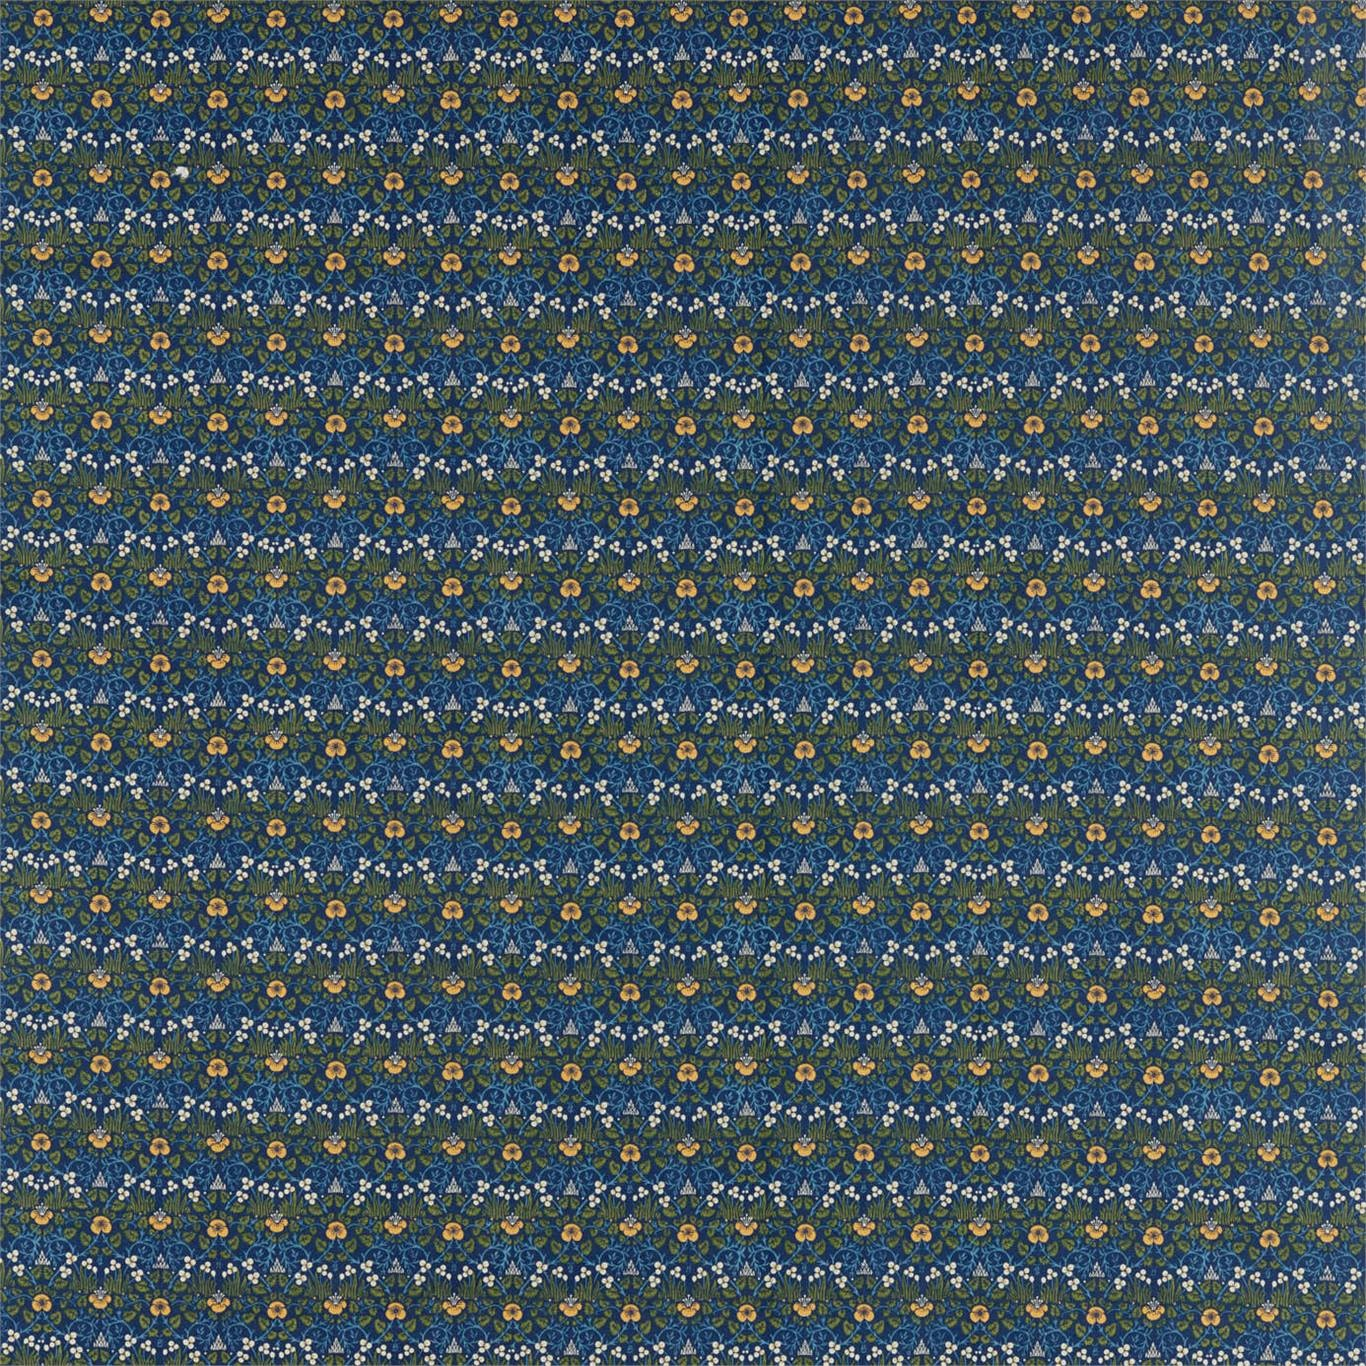 Image of Morris & Co Eye Bright Indigo Fabric 226597